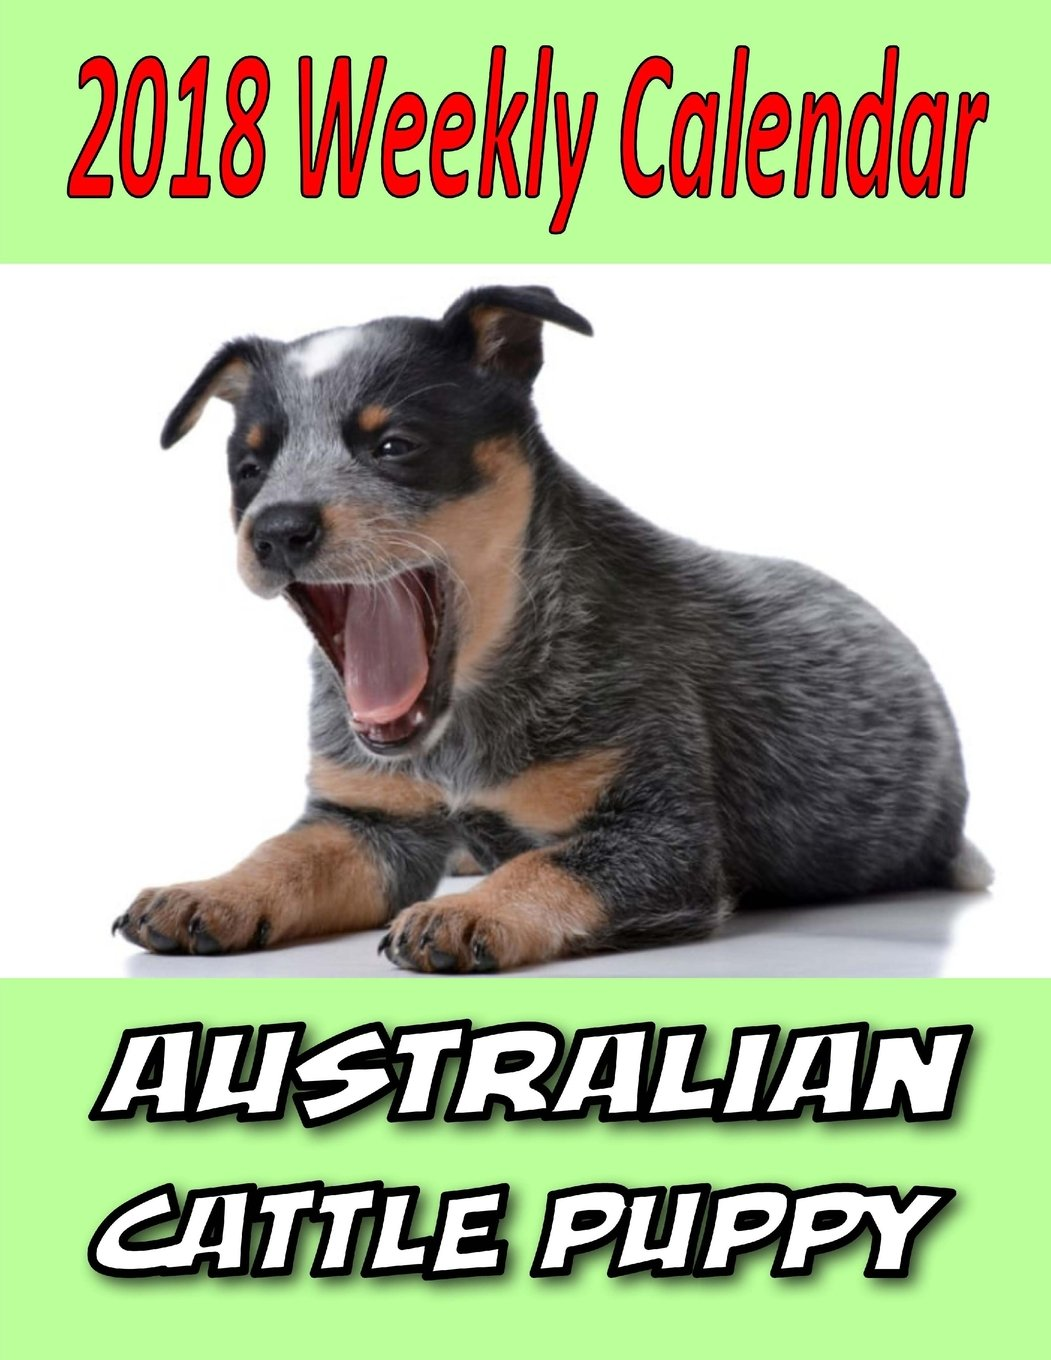 2018 Weekly Calendar Australian Cattle Puppy: Dog Quotes, To Do List, Personal Notes, and More...